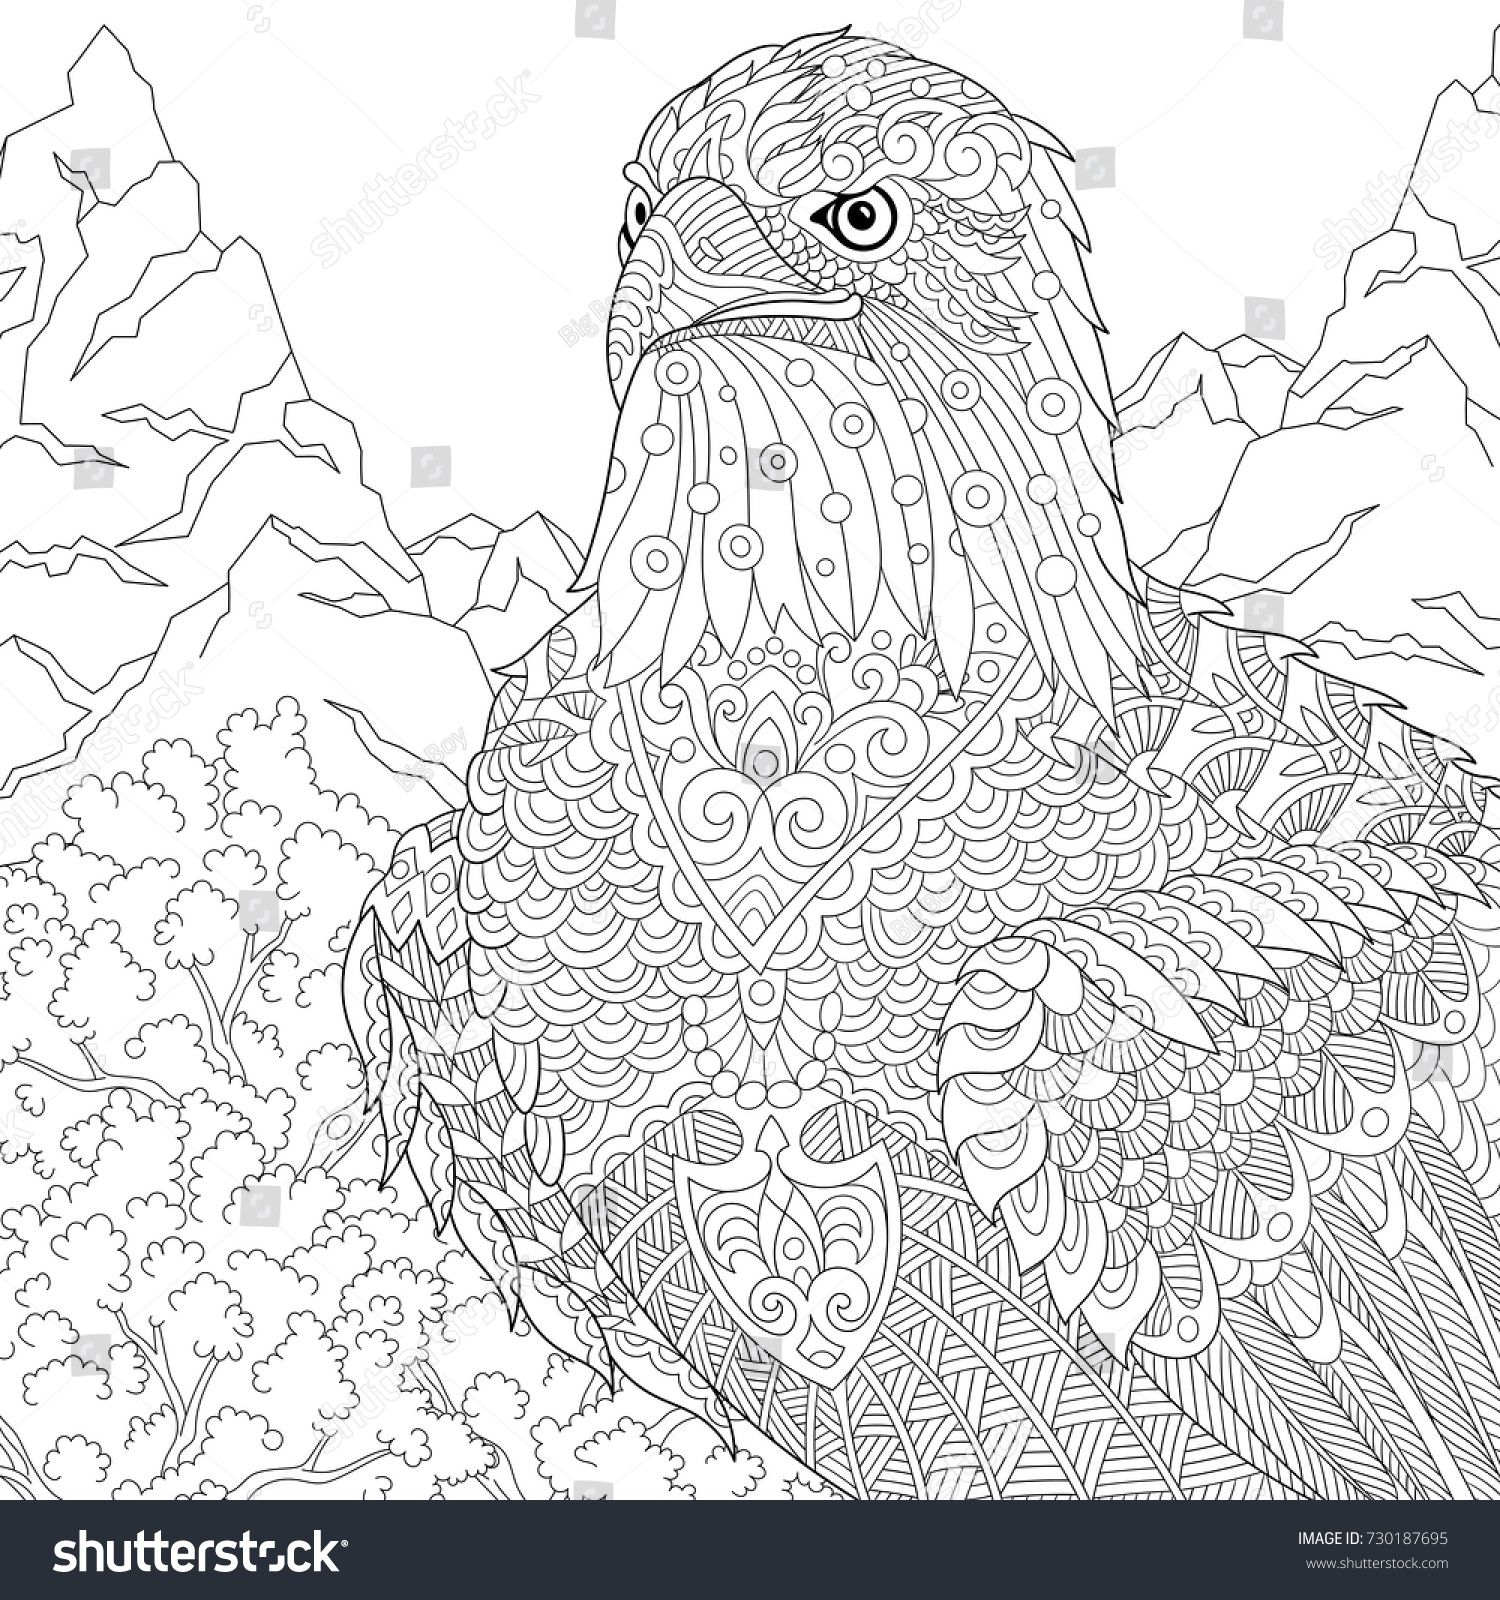 Coloring Page Of American Bald Eagle National Symbol Of The Usa